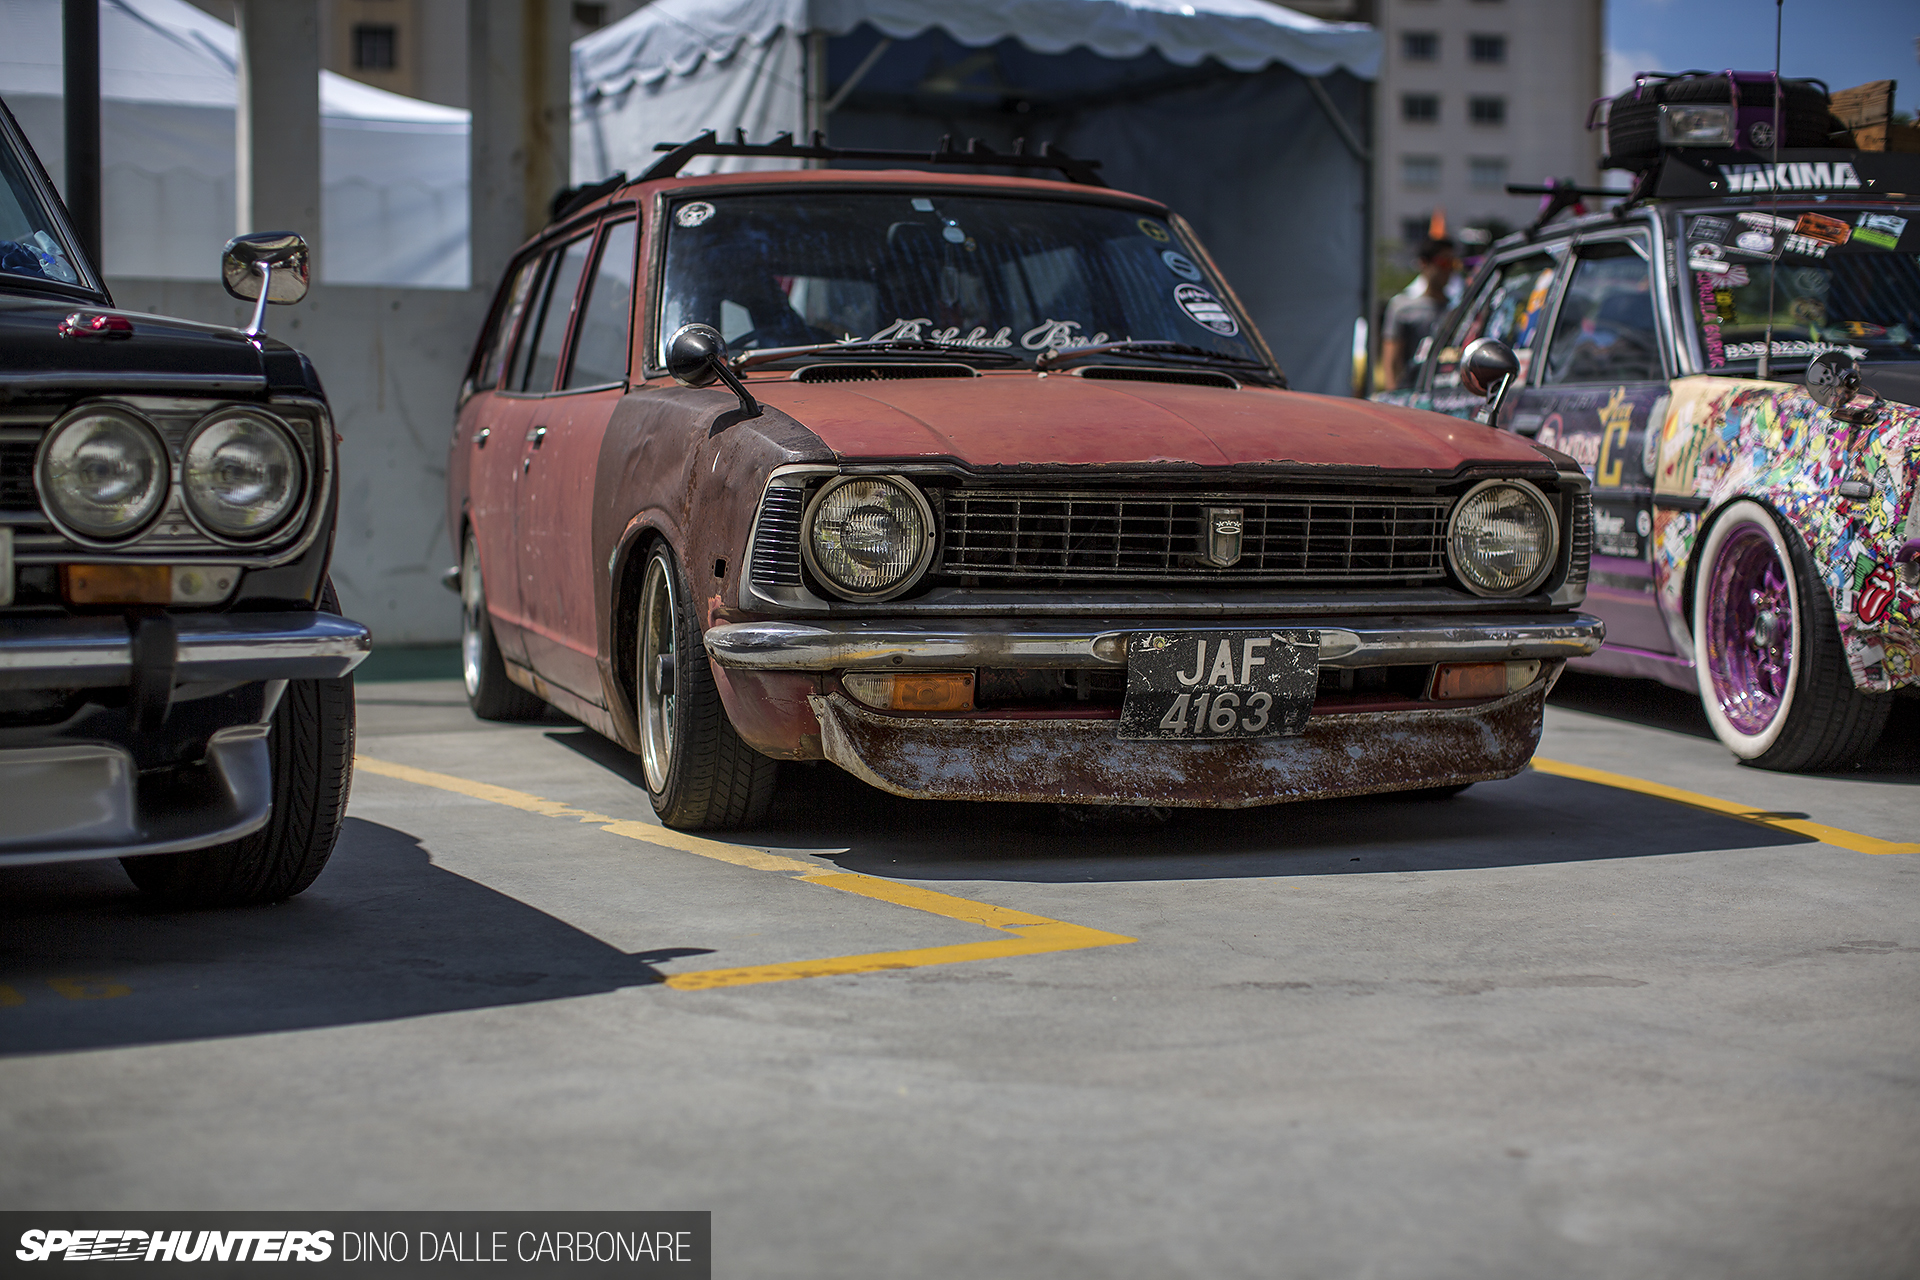 Malaysia A Modifying Melting Pot Speedhunters